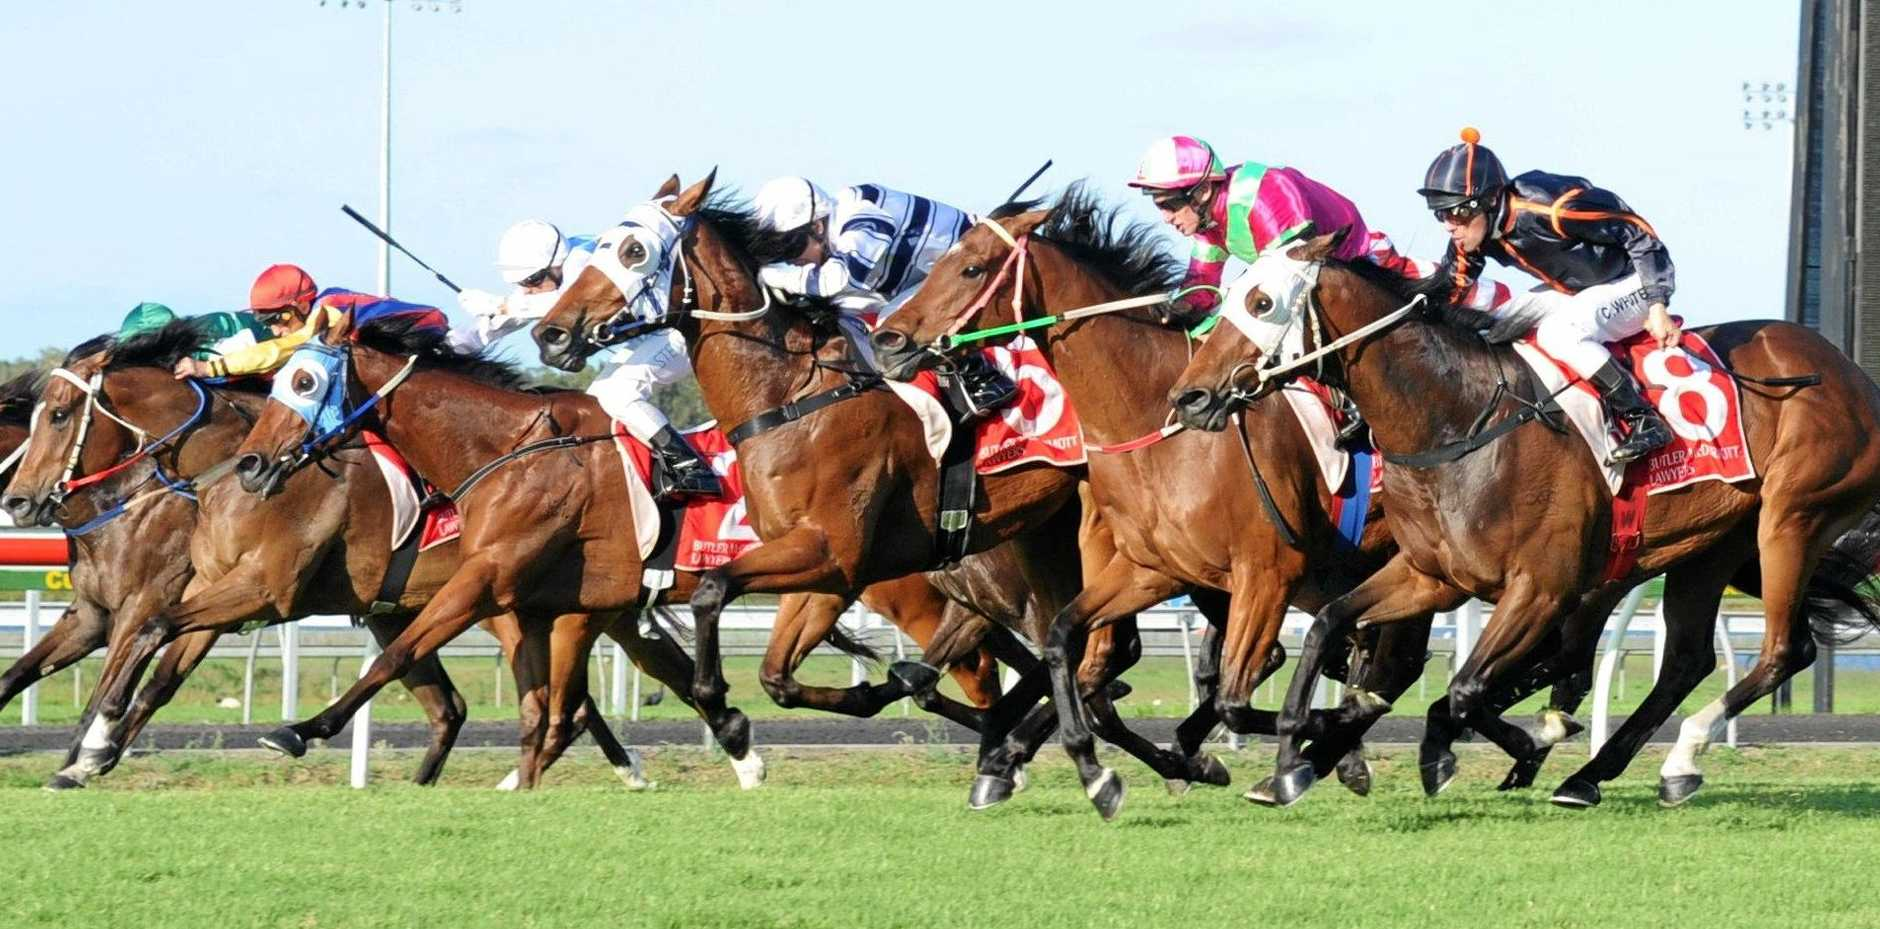 RACING: The action will be on at Corbould Park on Melbourne Cup Day.